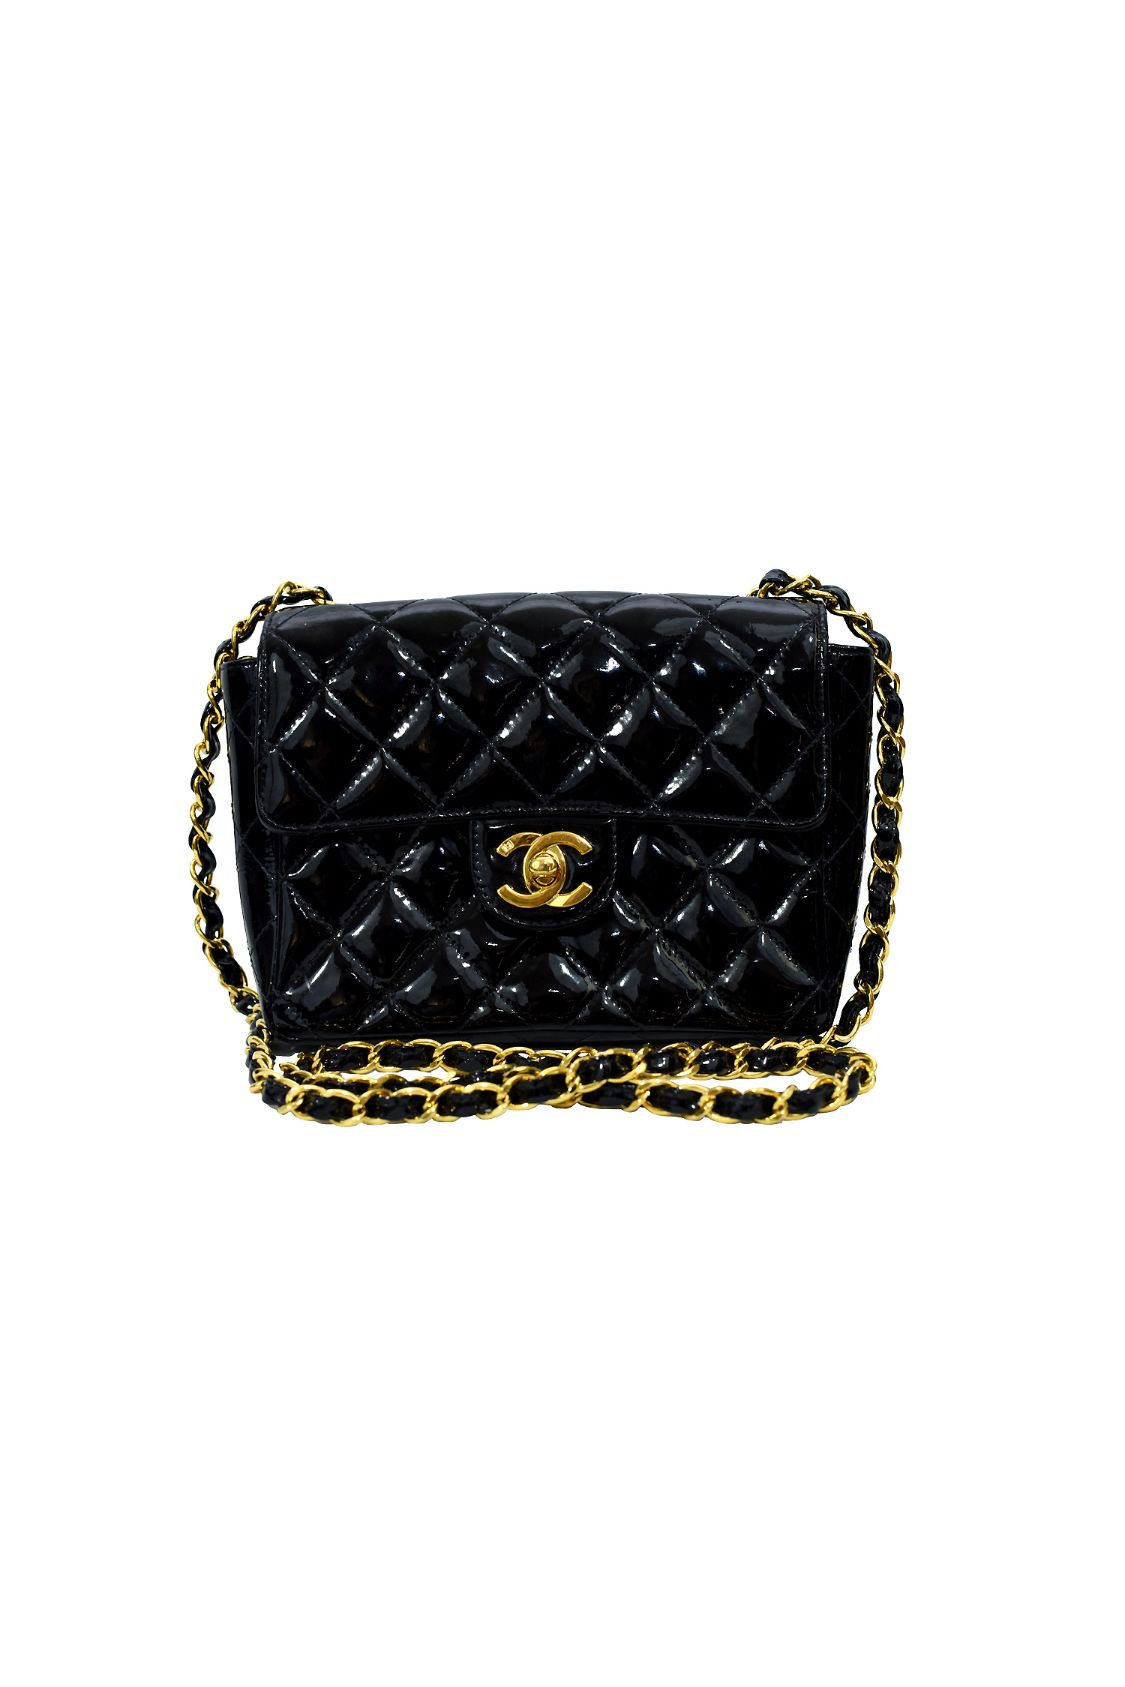 Chanel Black Single Flap Mini Patent Leather Handbag Small Size  2 Preview Images